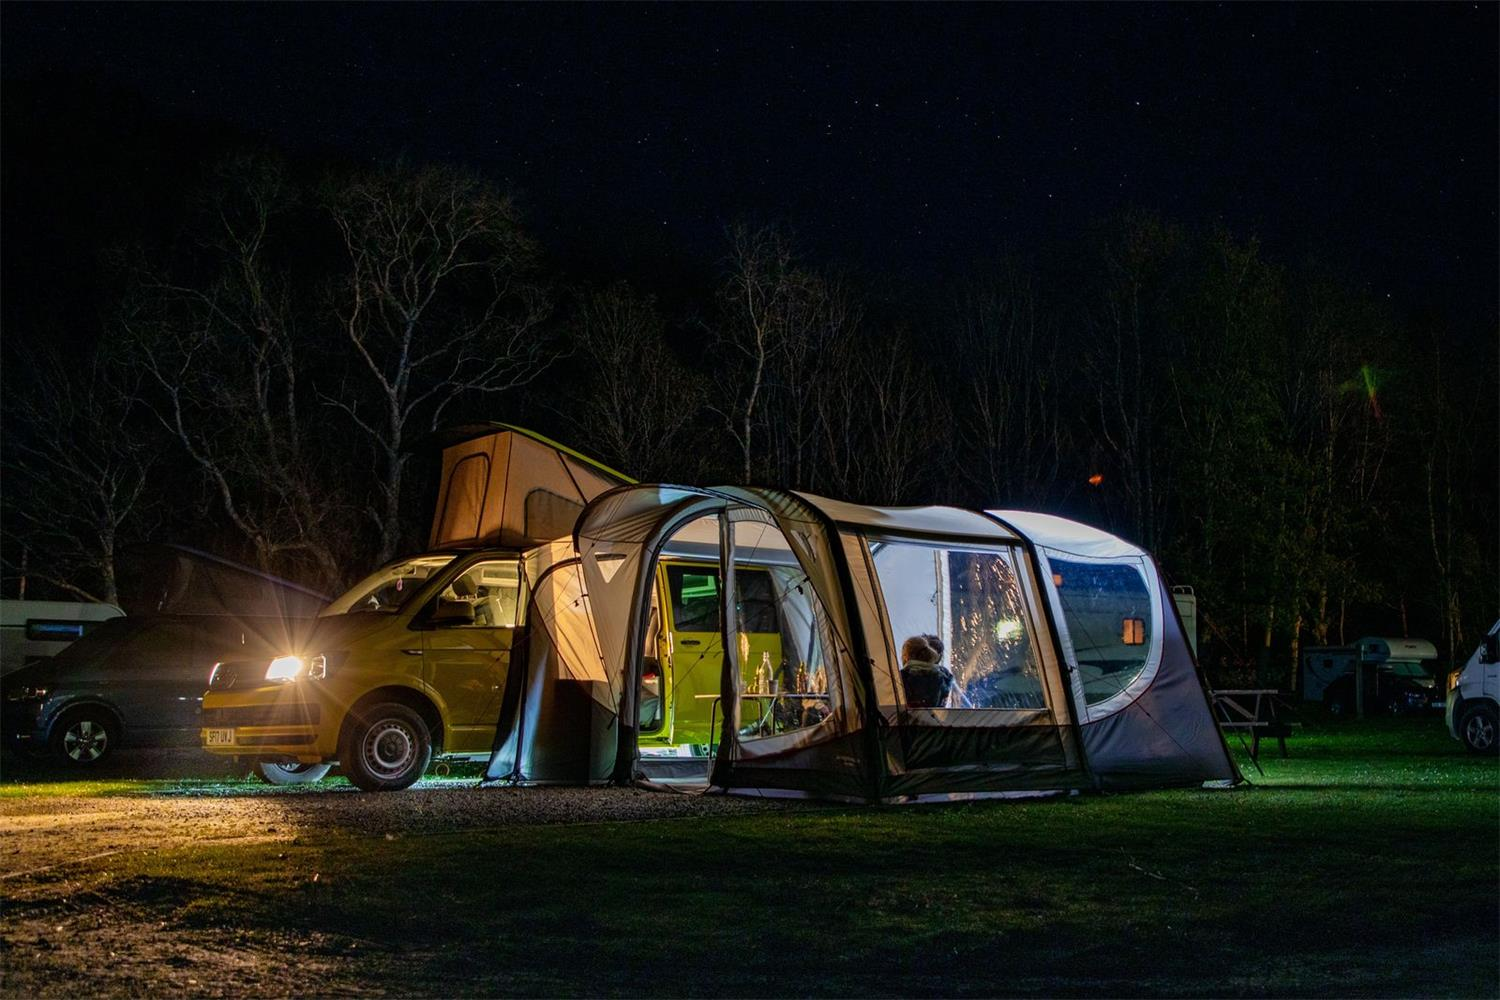 The Vango Magra VW deivwaway awning, designed for those who love an outdoor active life.